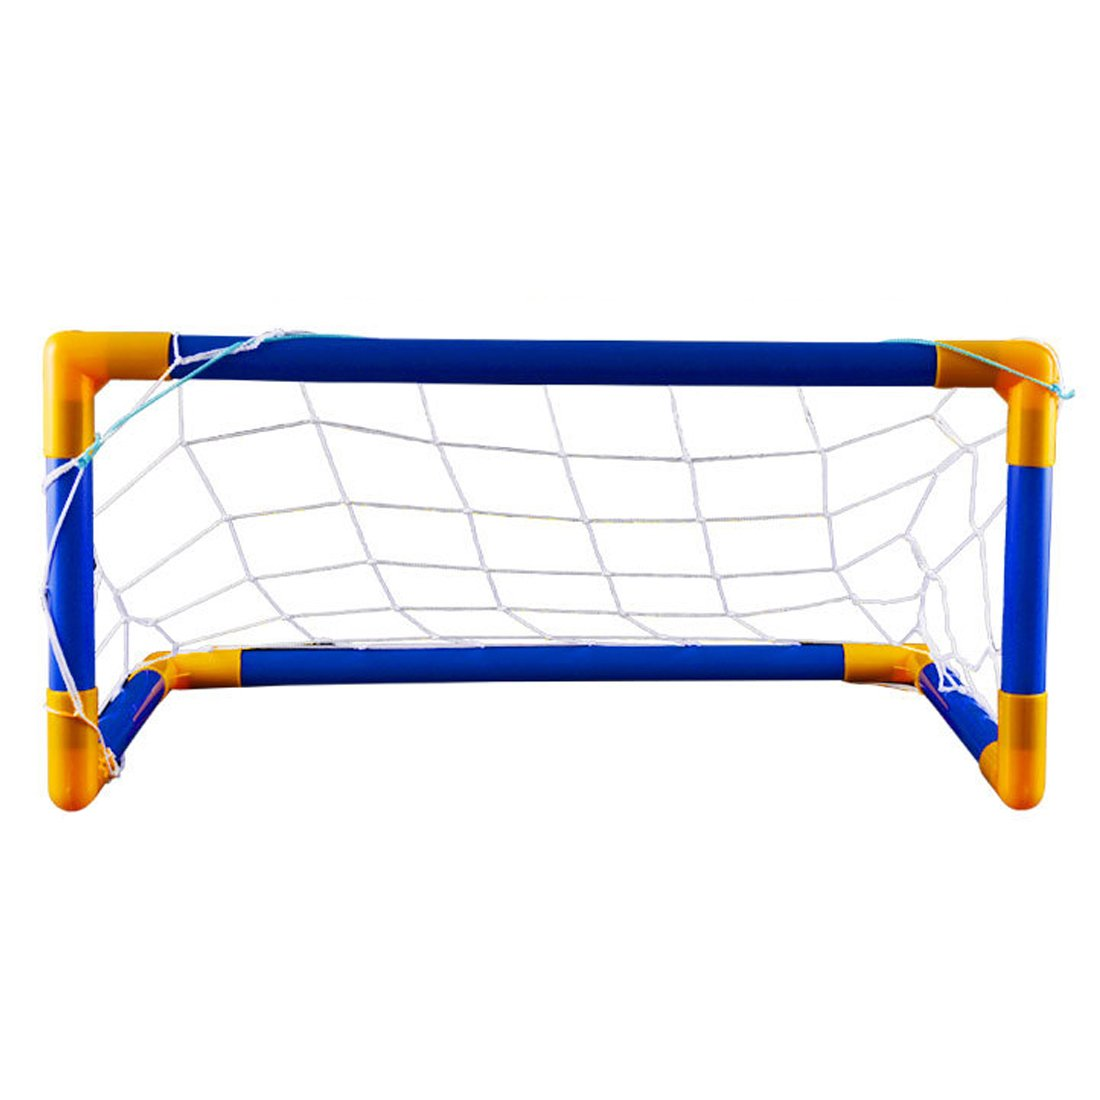 ruiyif Soccer Goal Net for Toddlers Kids Includes Goal with Netミニサッカーボール手ポンプインドアアウトドア裏庭 B07C5LMG7L